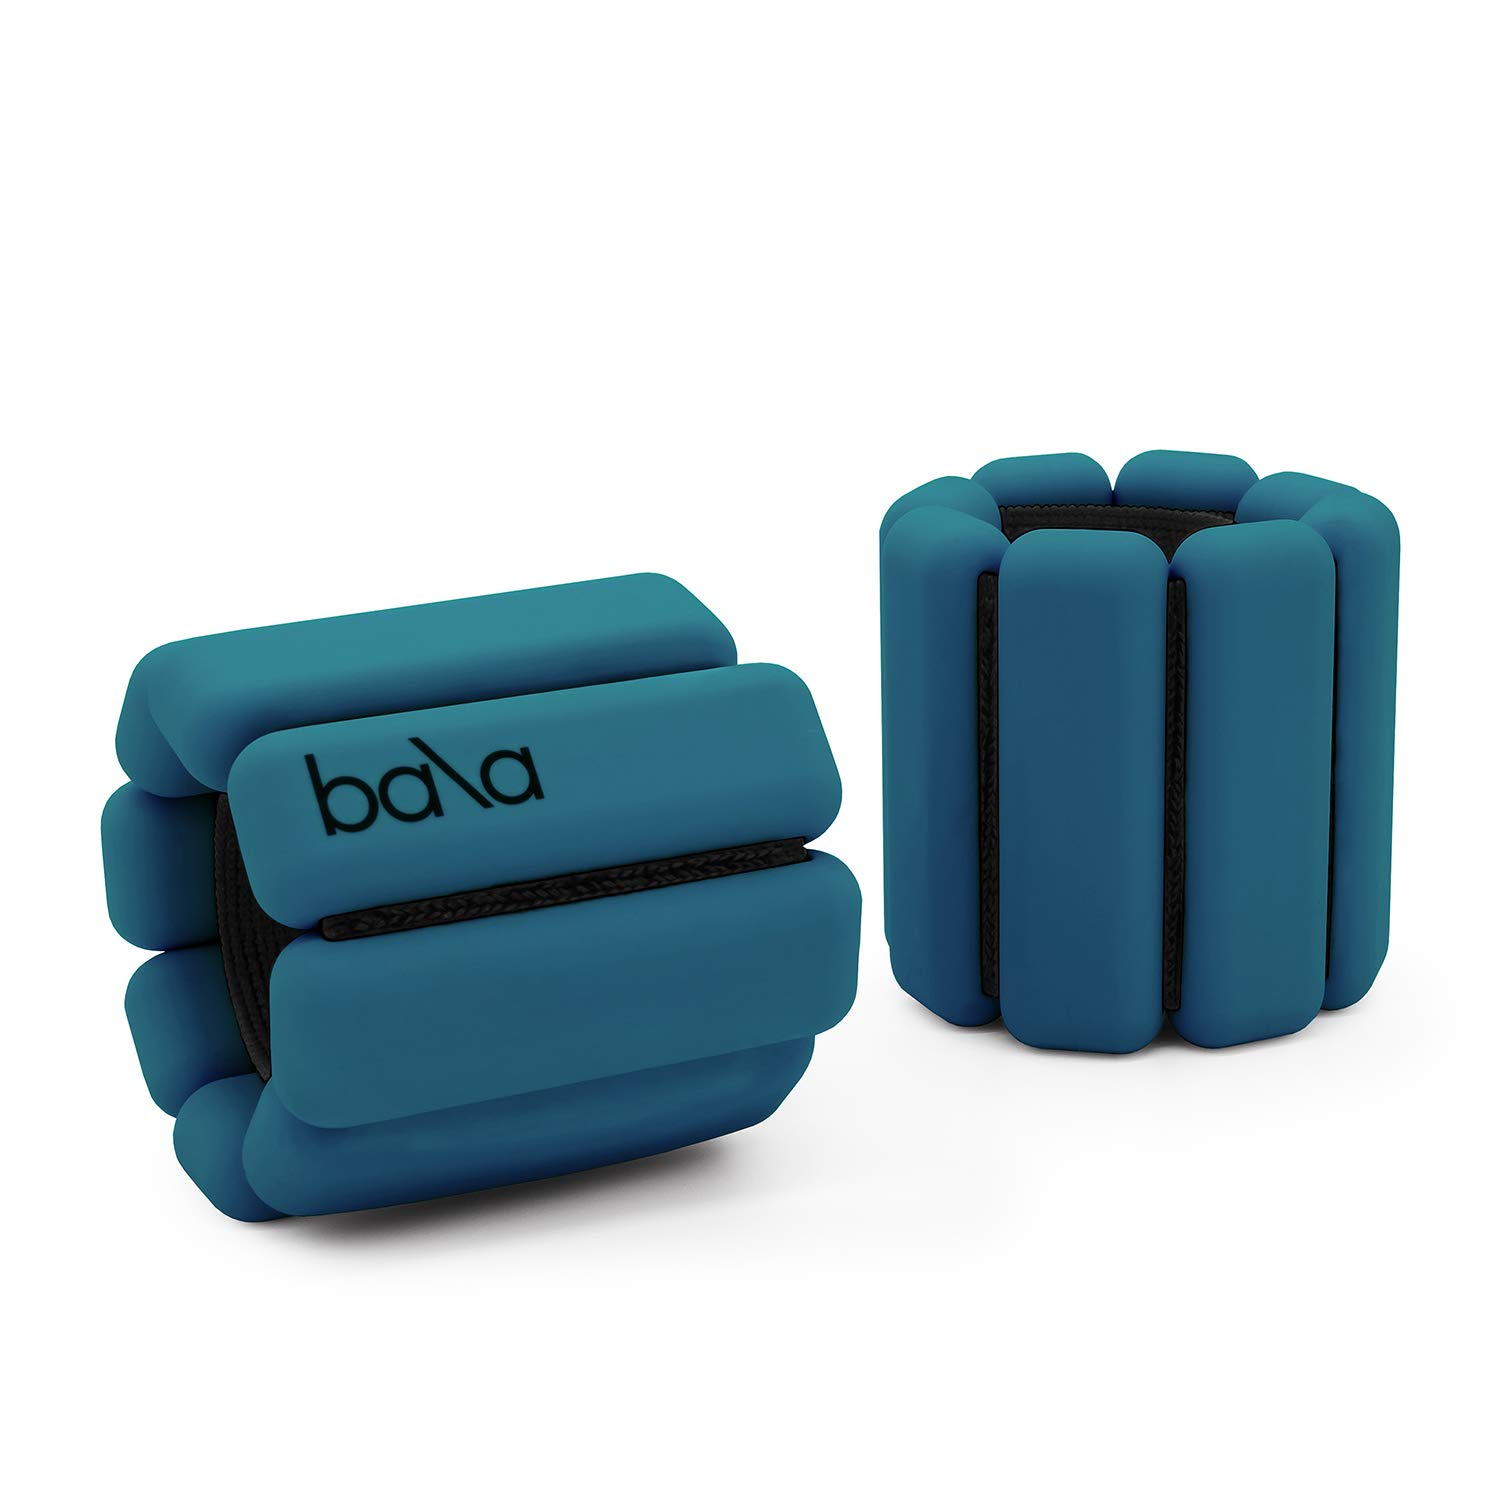 Bala Bangles | Fully Adjustable Wearable Wrist & Ankle Weights | Yoga, Dance, Running, Barre, Pilates, Cardio, Aerobics, Walking | 1 Pound Each, 2 Per Set (Deep Blue) by Bala Bangles